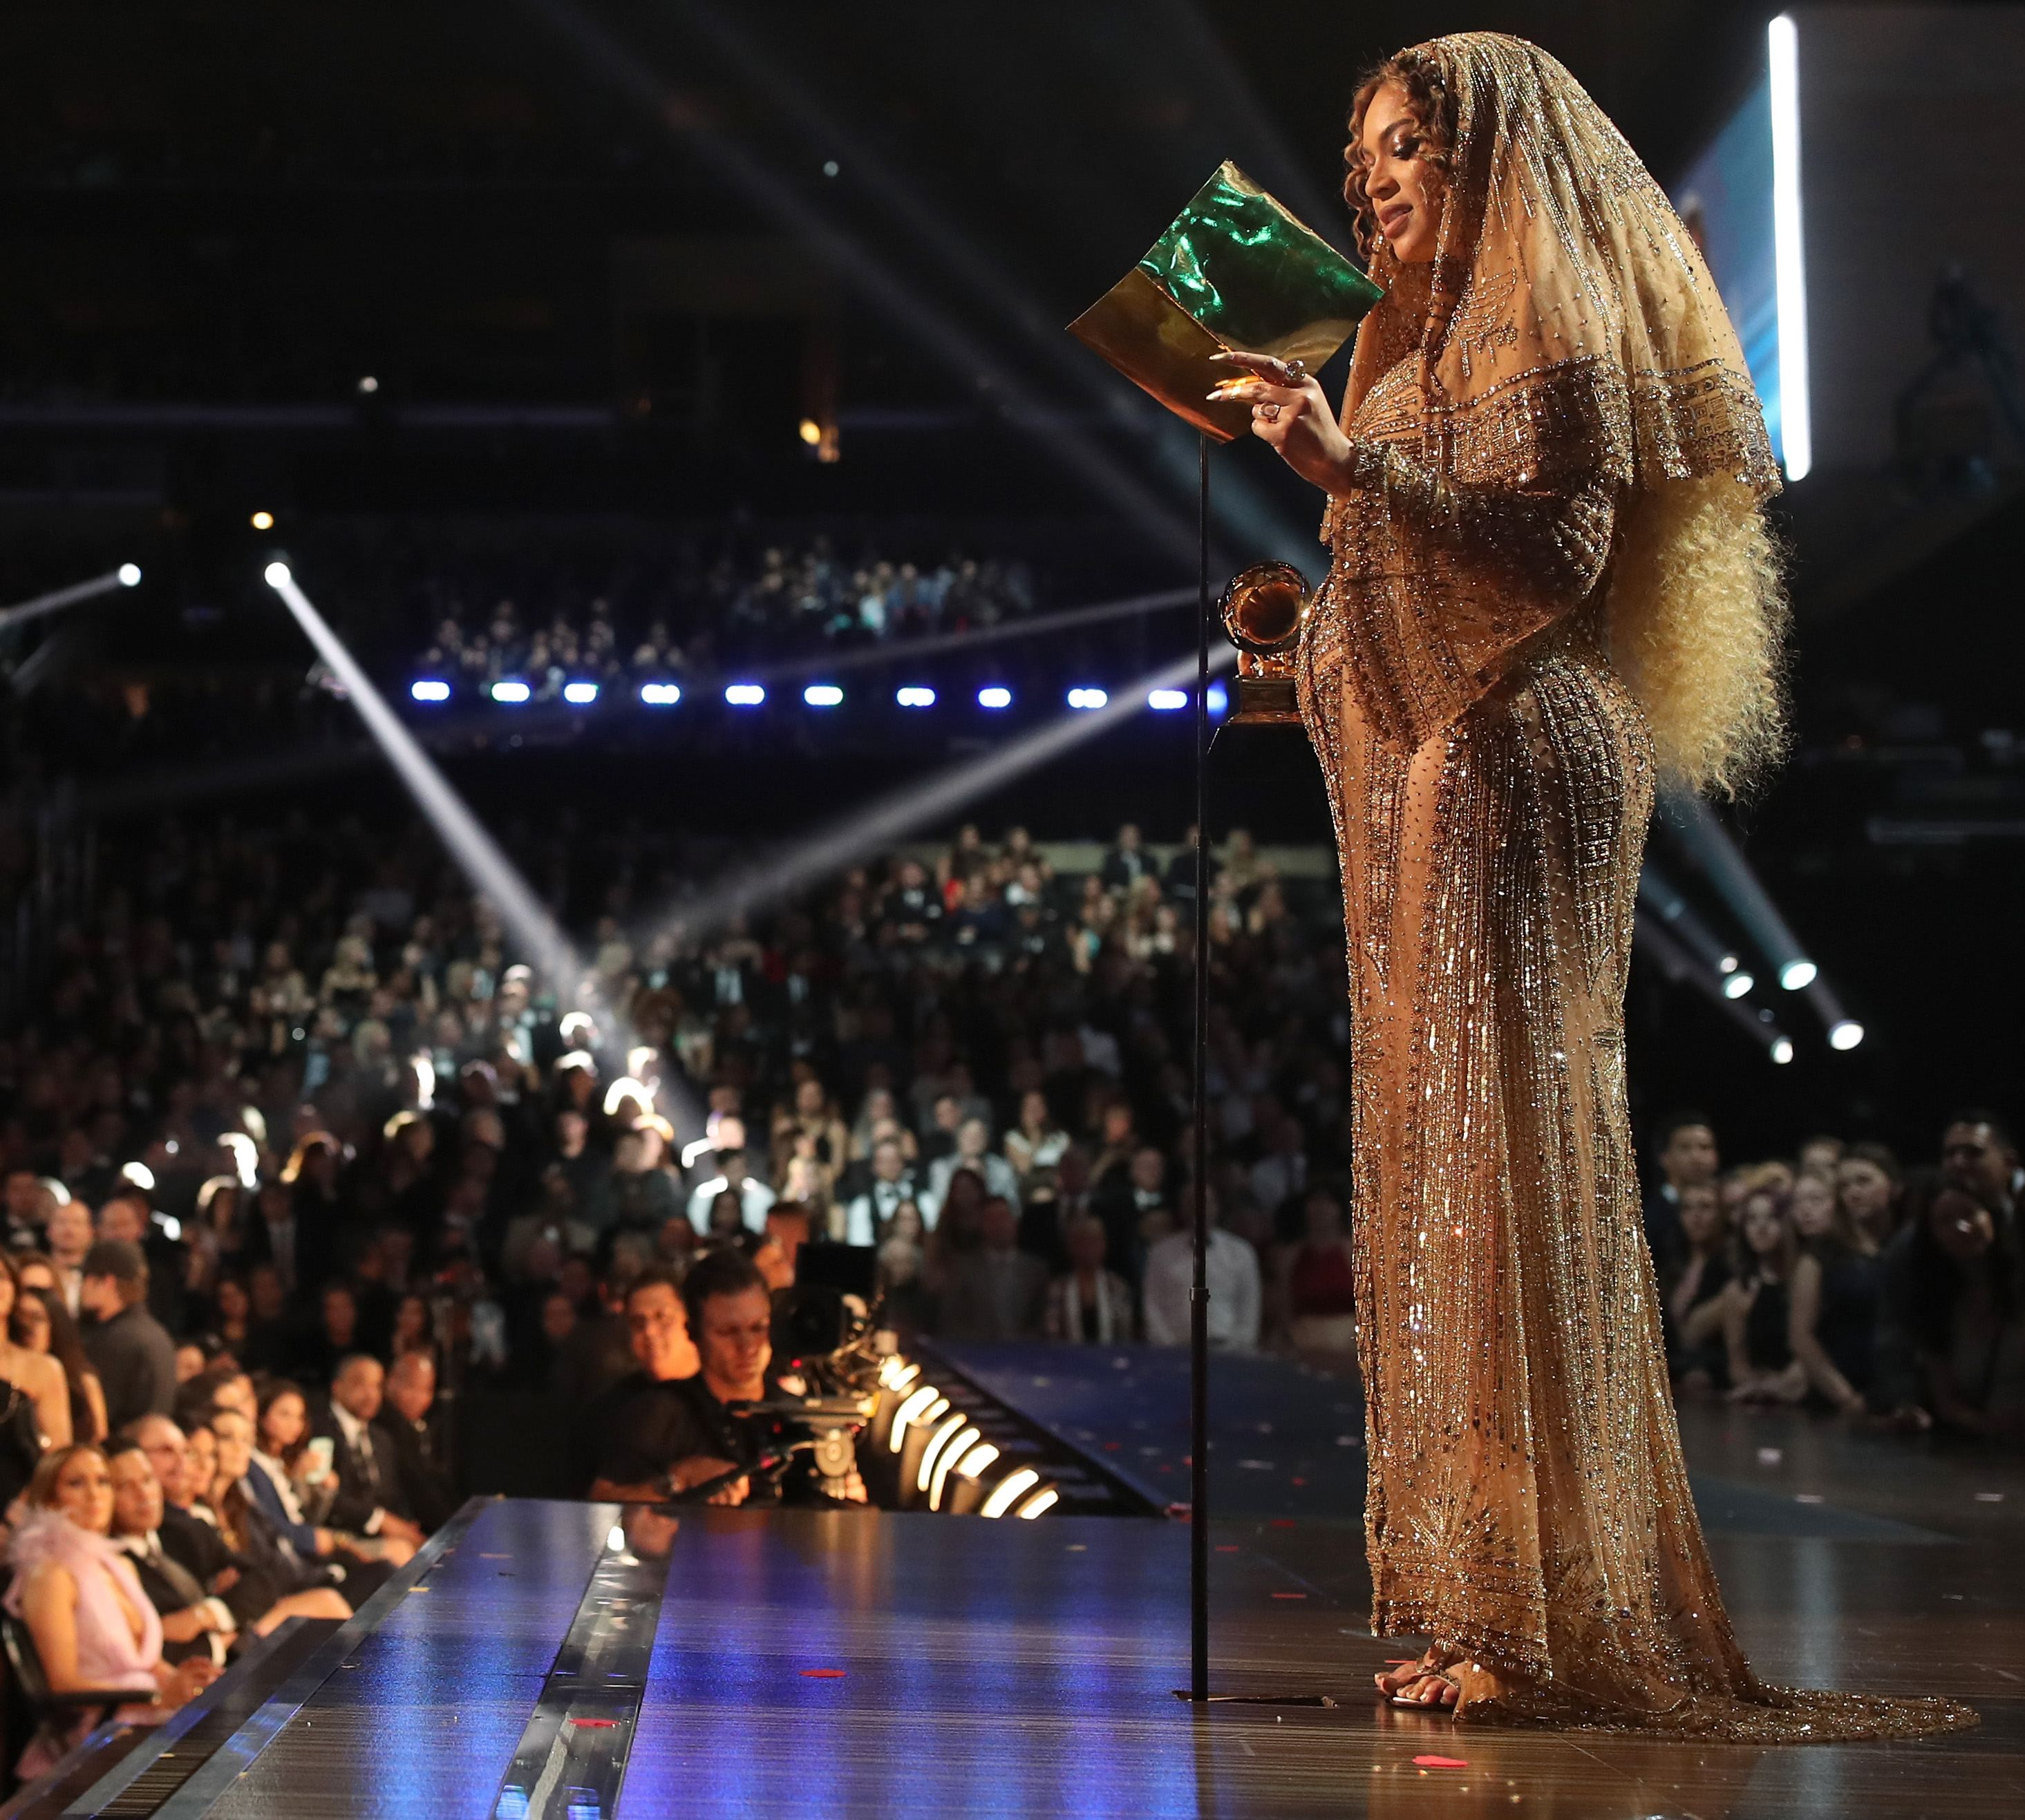 Beyoncé reads her acceptance speech during the 2017 Grammy Awards.